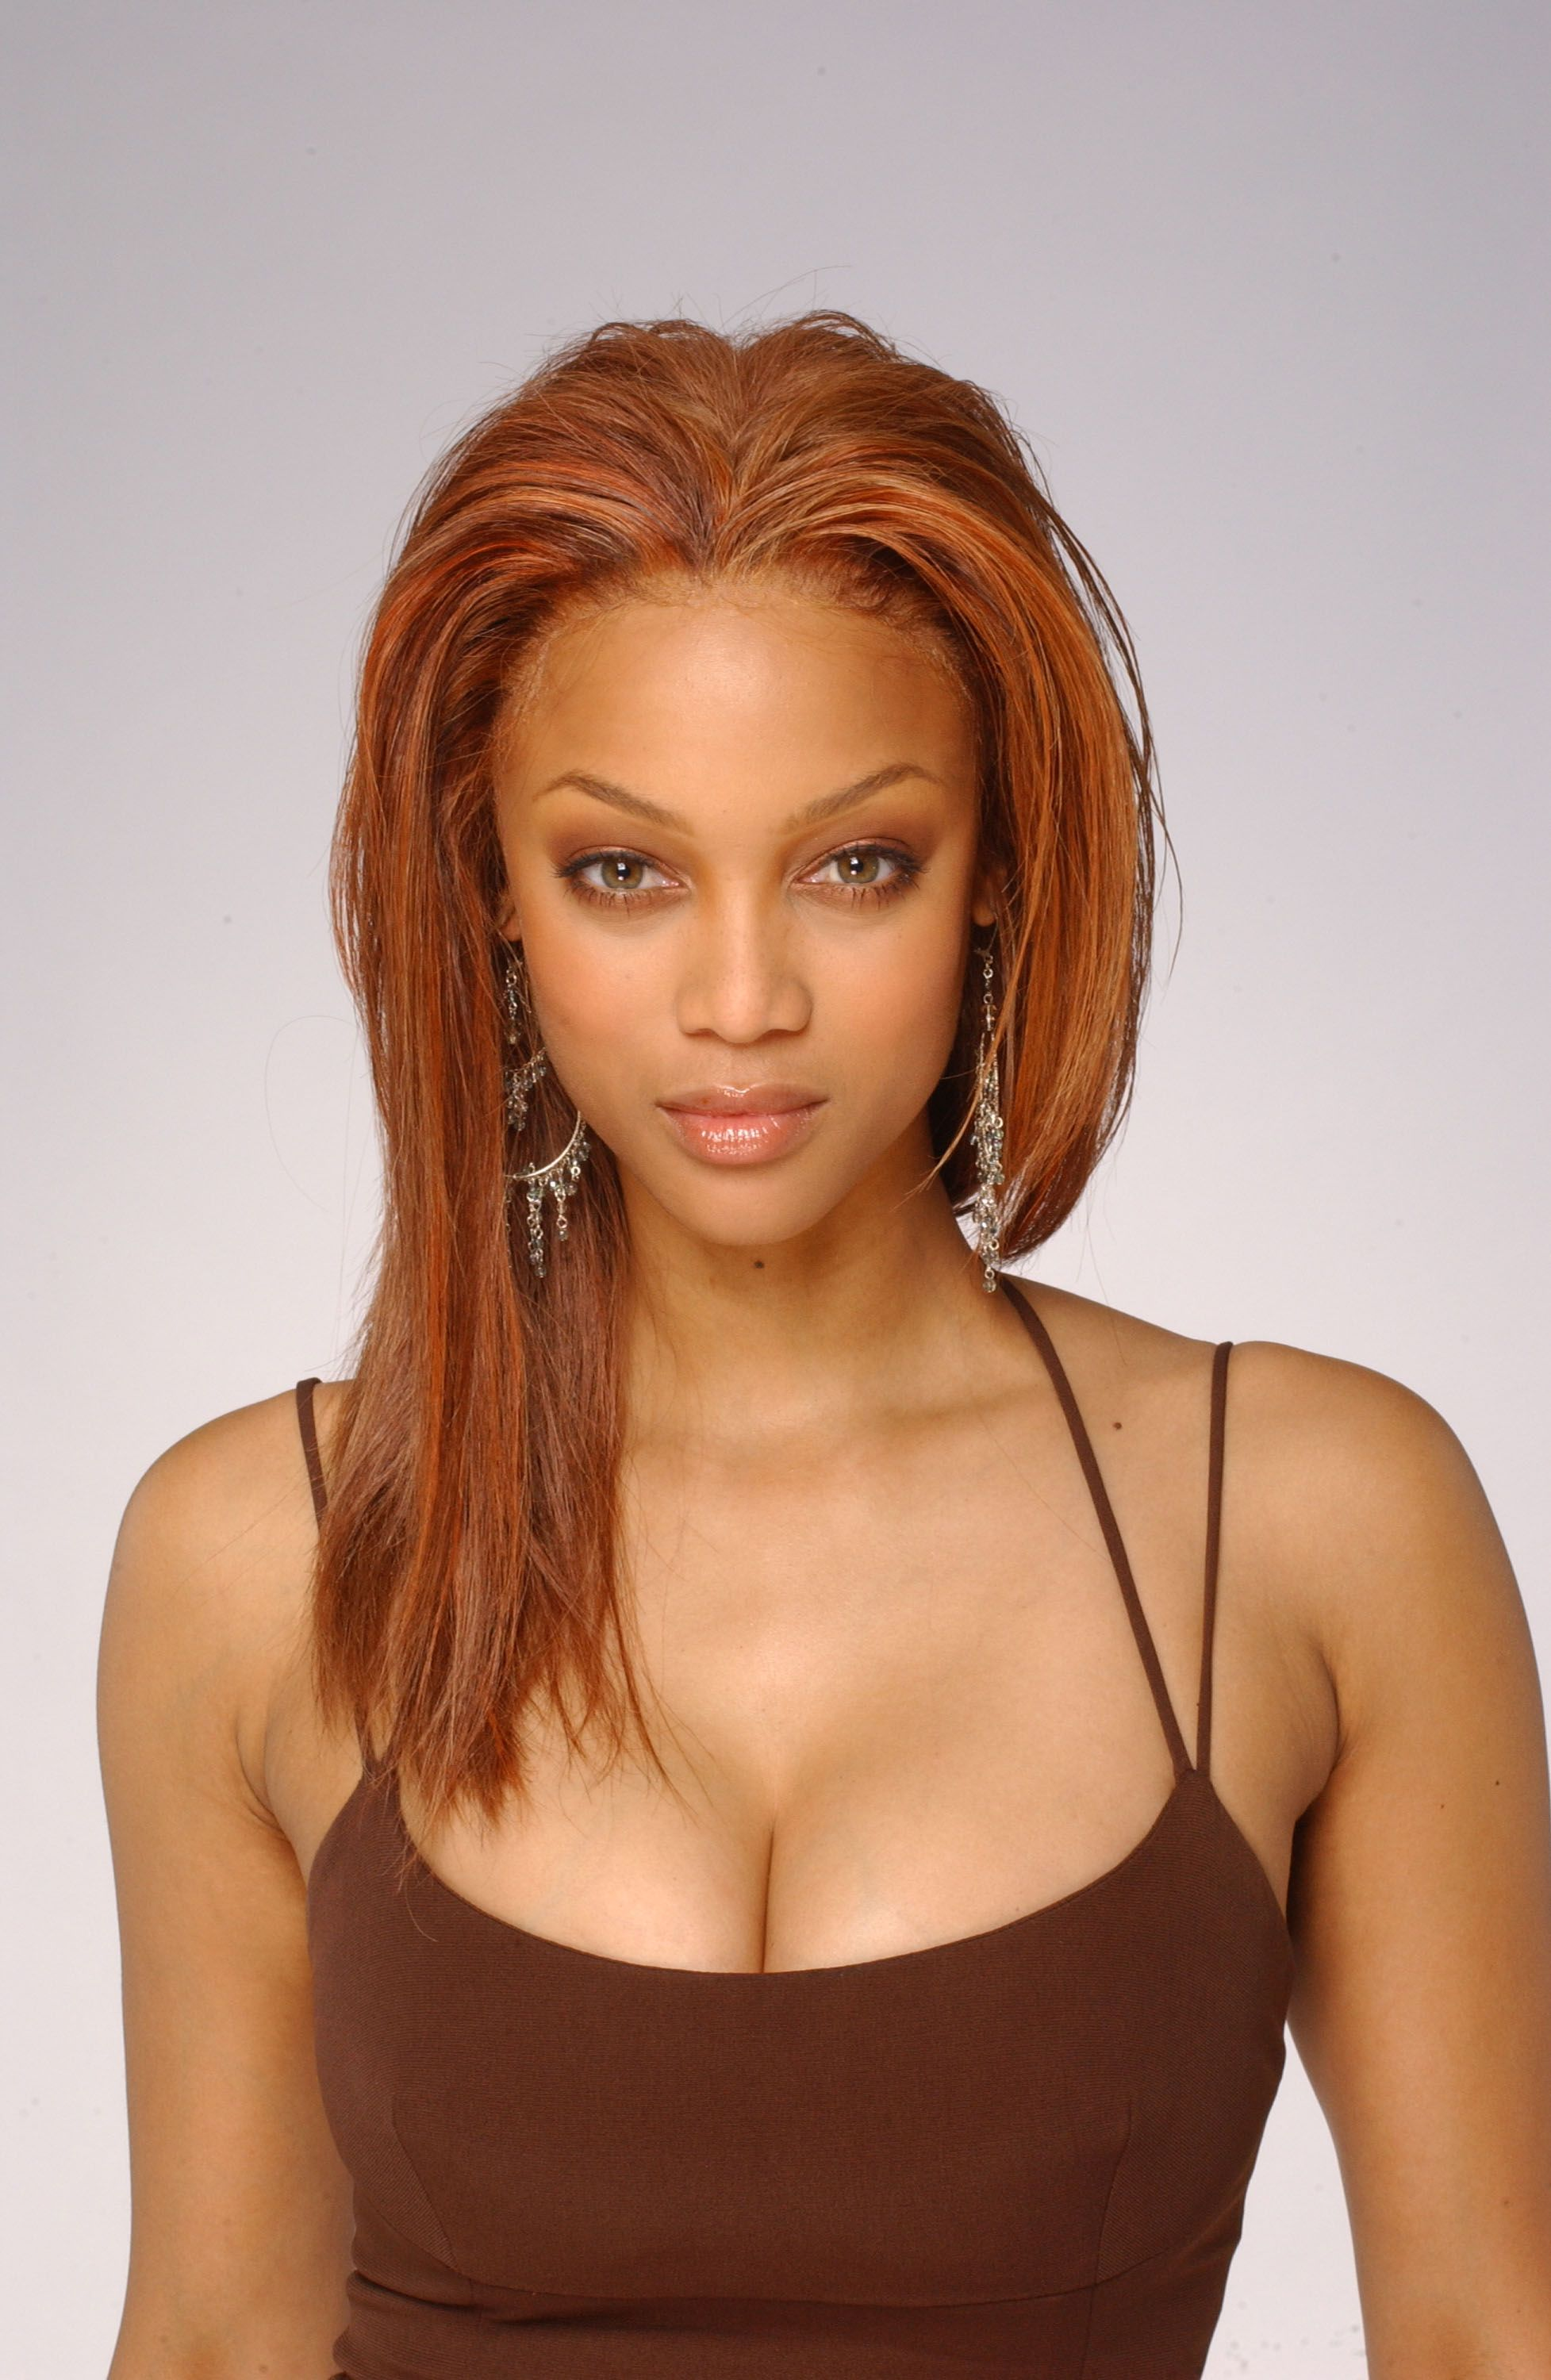 Tyra Banks By Harry Langdon 2004 Tyra Banks Show Tyra Banks Age Tyra Banks Hair